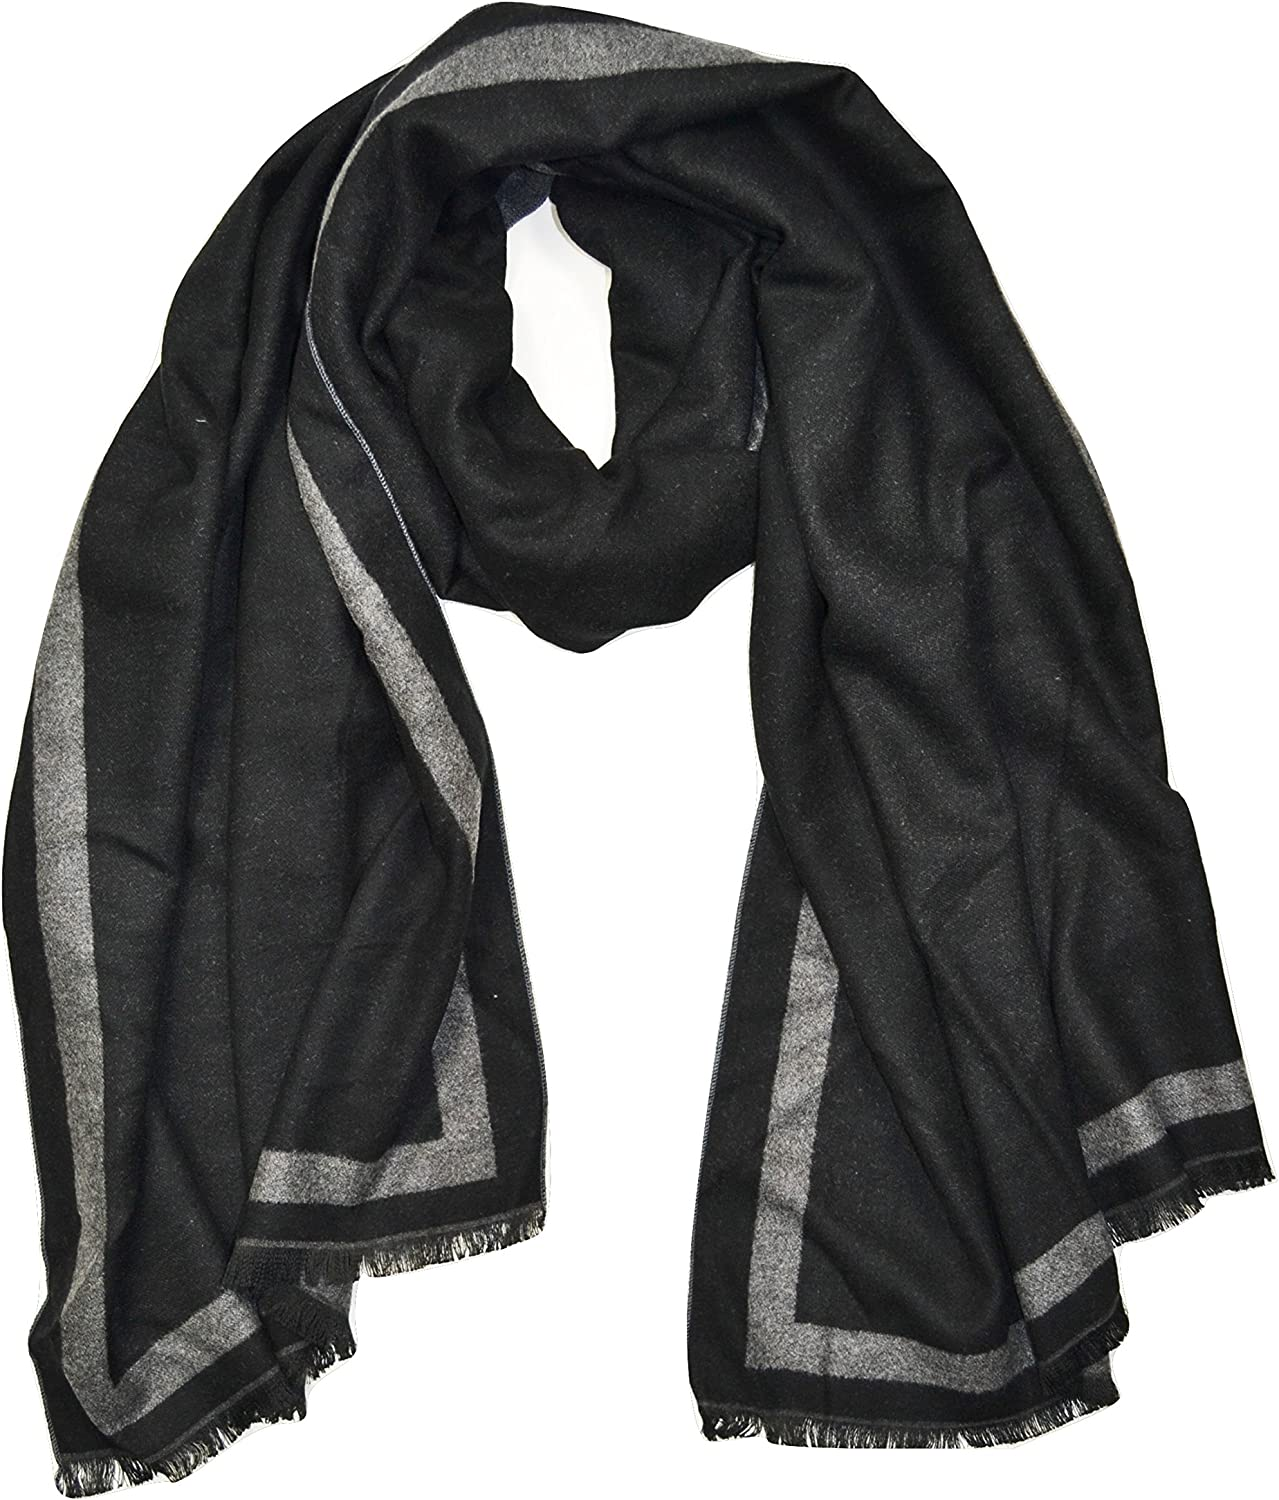 CASHMERE Two-Sided Fashion Man's Scarf, Fashion Scarf for Men, Men Scarves